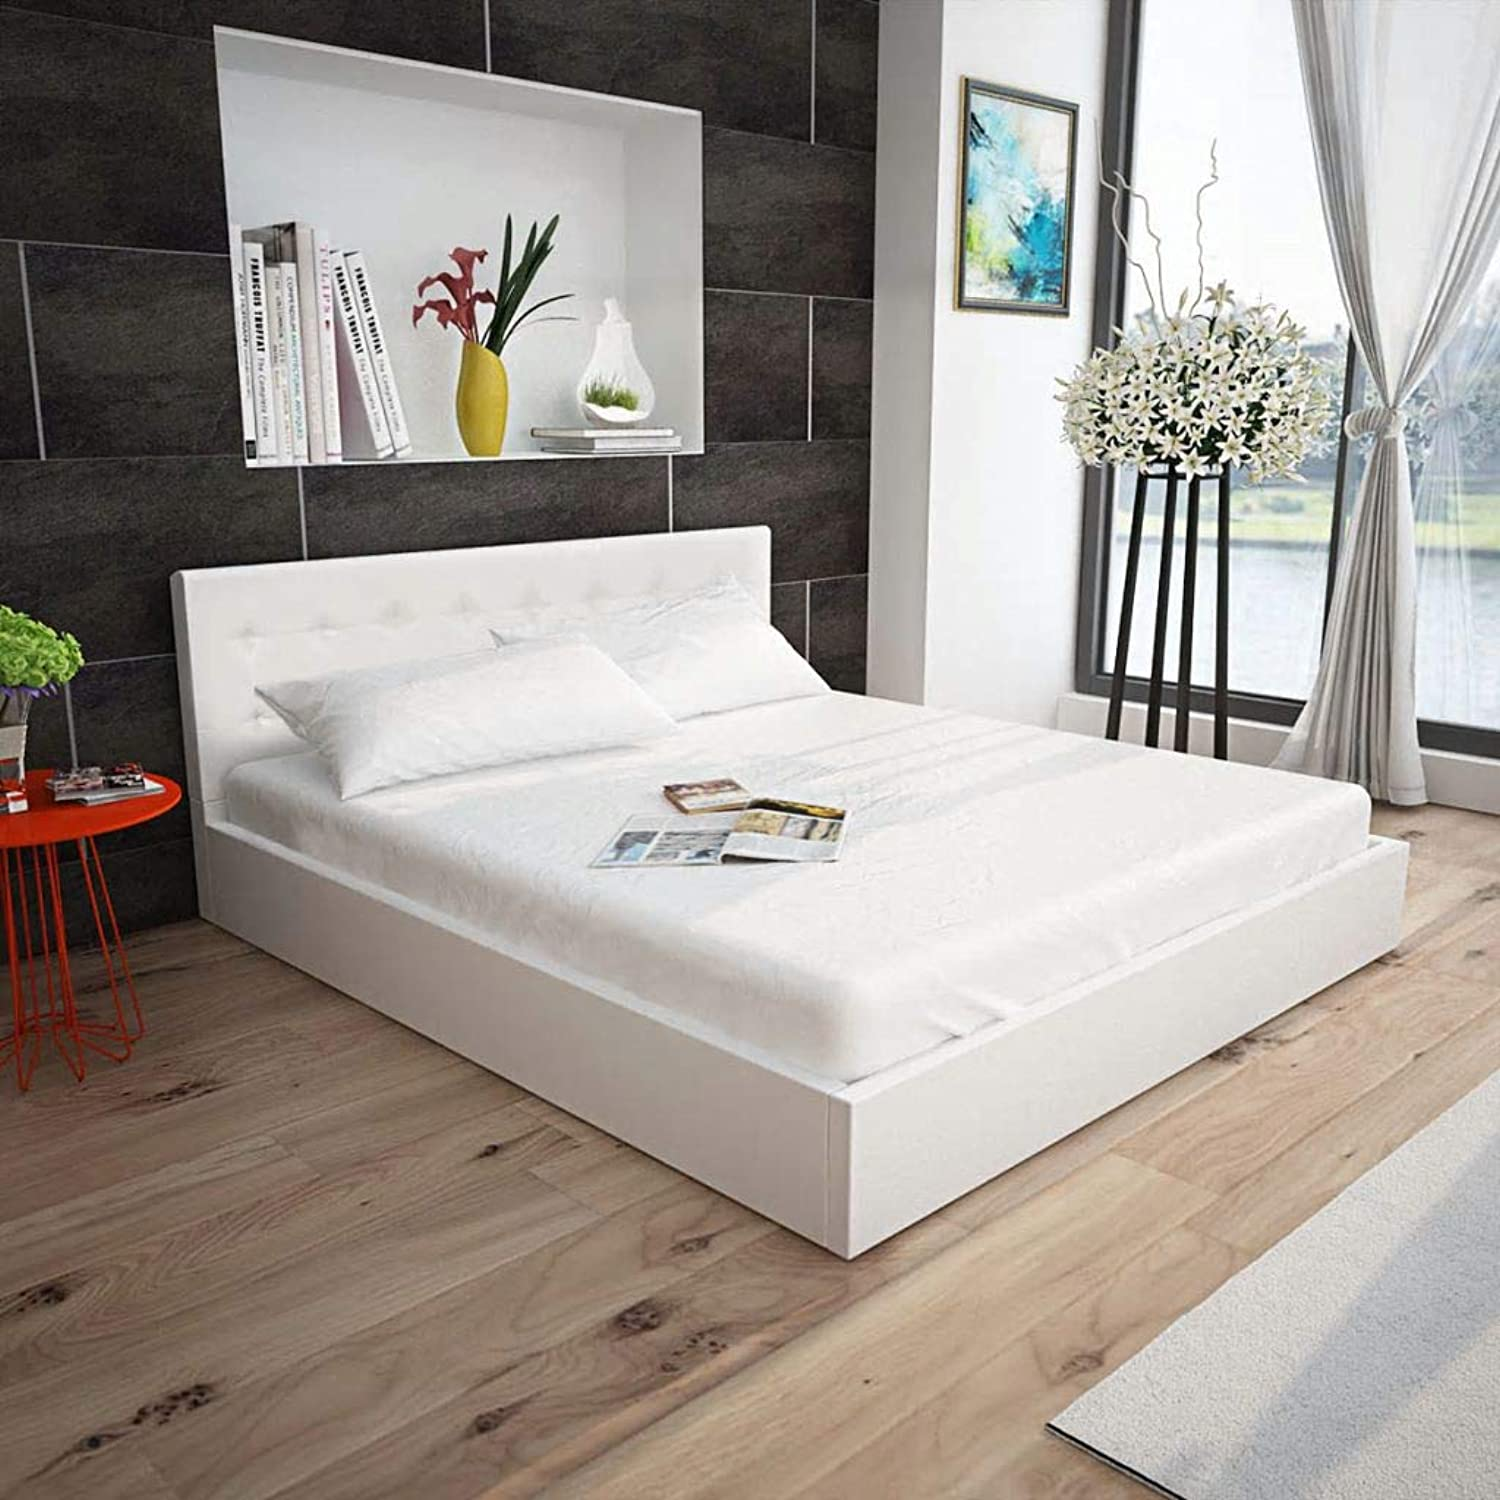 Festnight Bed Frame Double Size Bedroom Furniture Bed Frame Artificial Leather White,199 x 145 x 74 cm